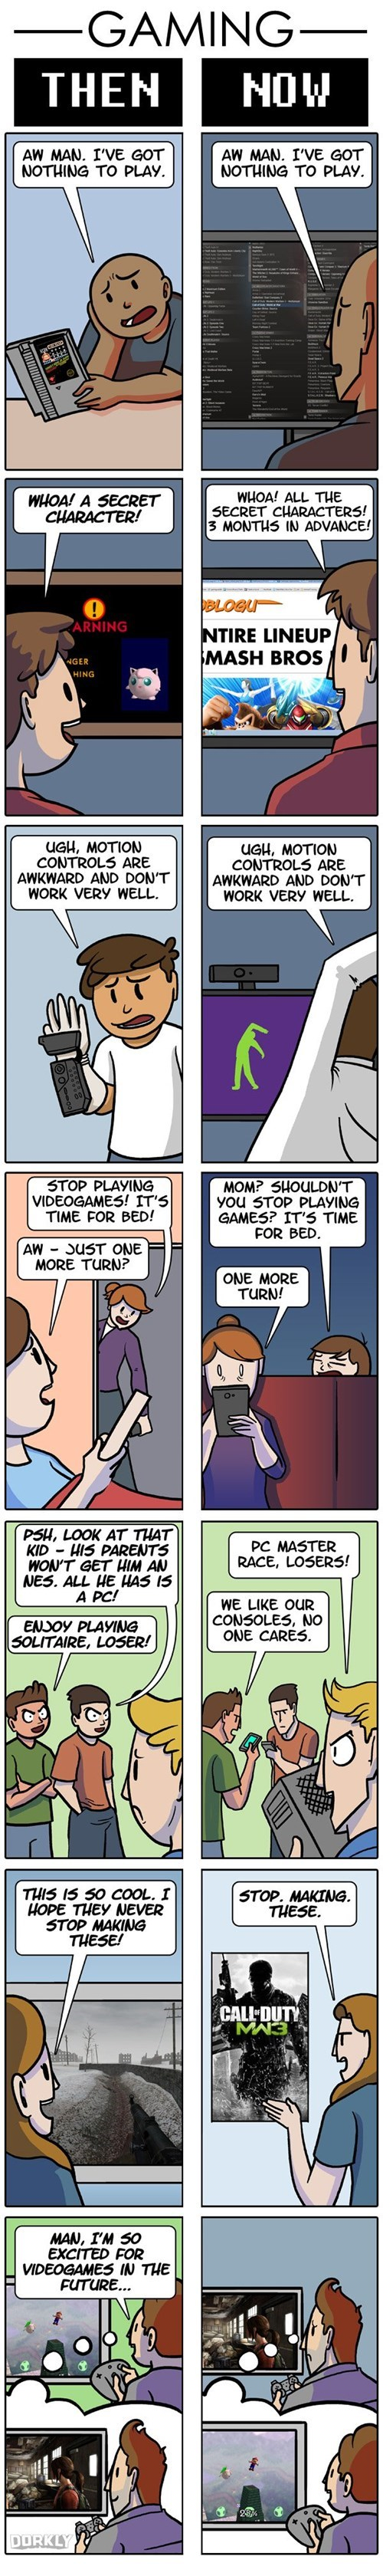 dorkly gaming nostalgia gamers web comics - 8307757568